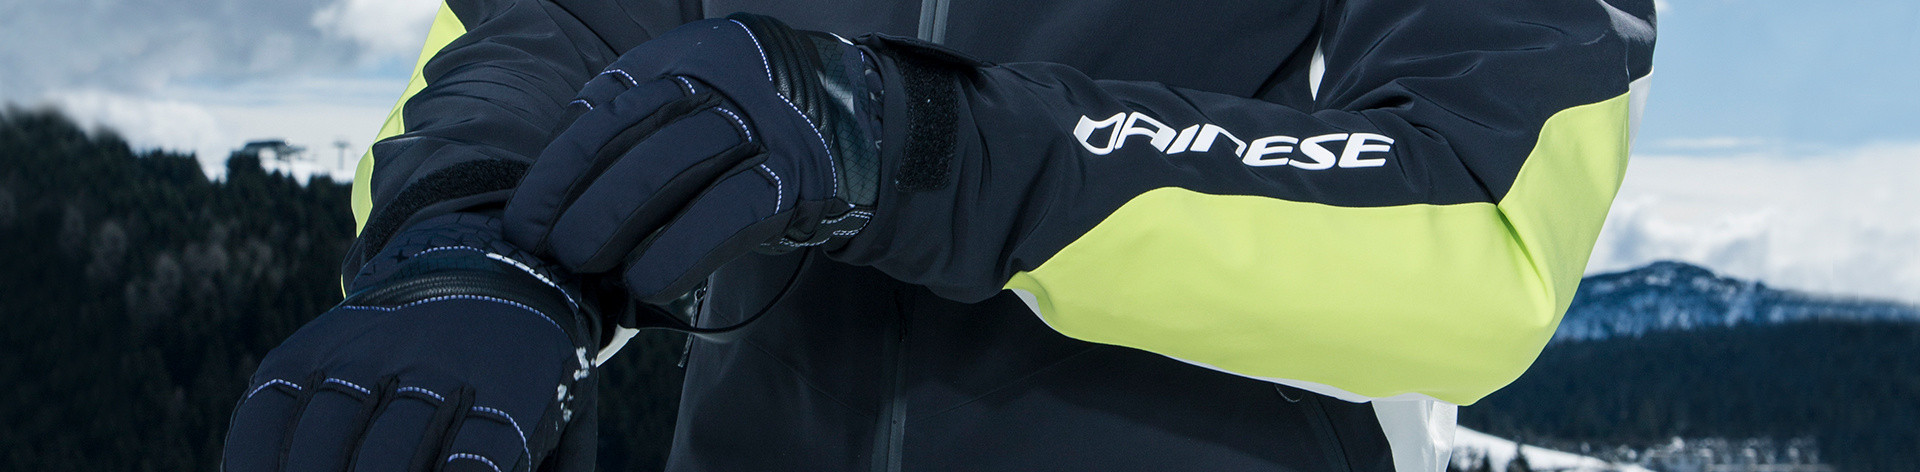 Dainese Winter Sports - Handschuhe